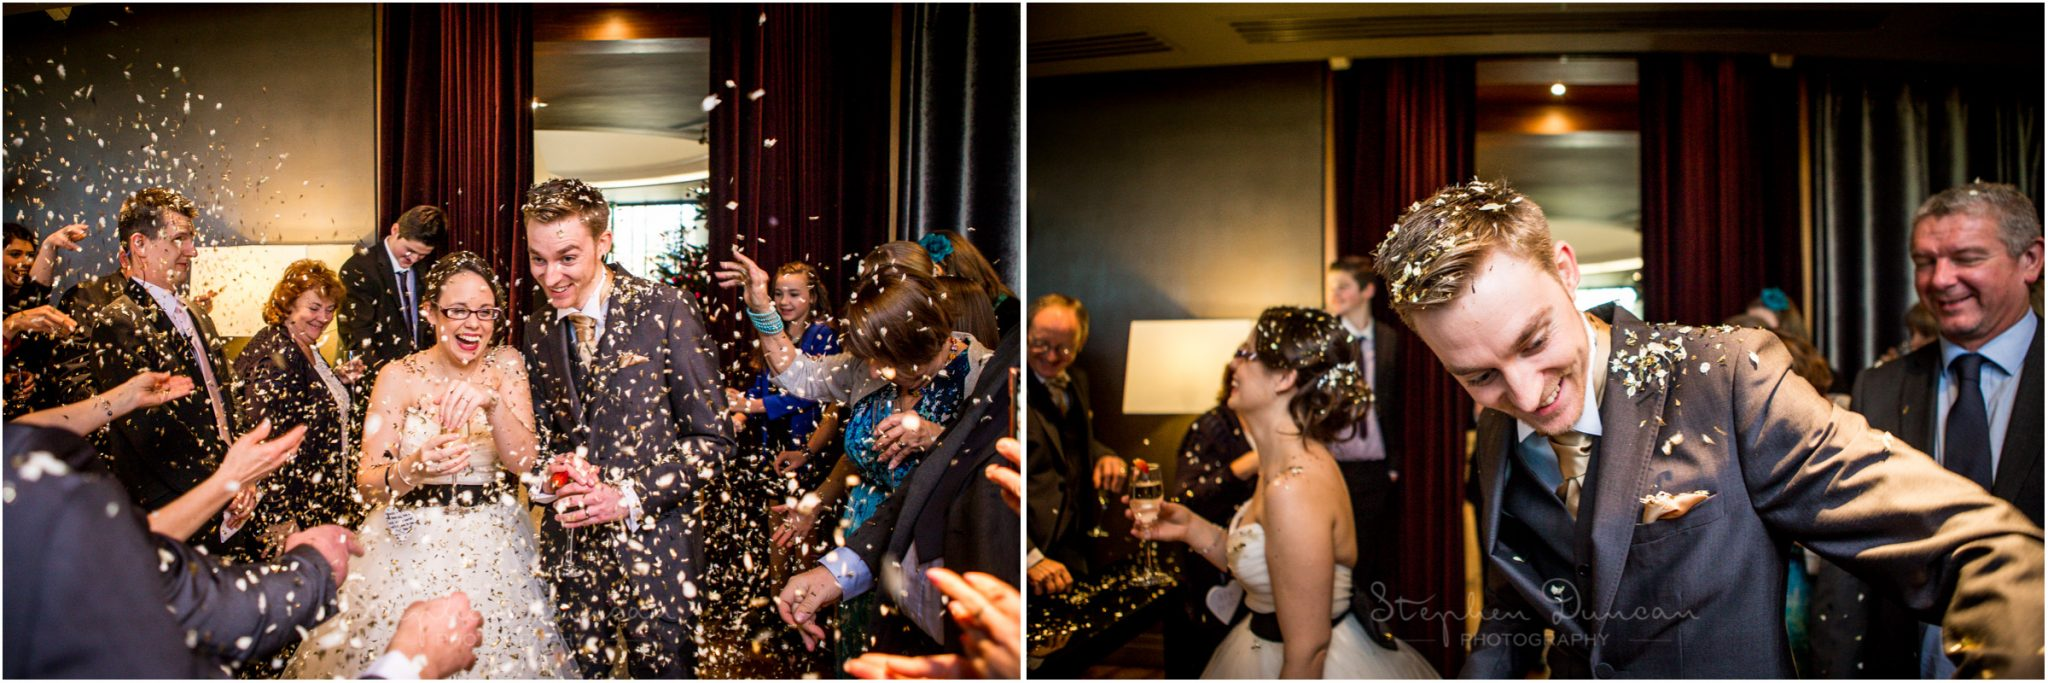 The Aviator wedding photography confetti